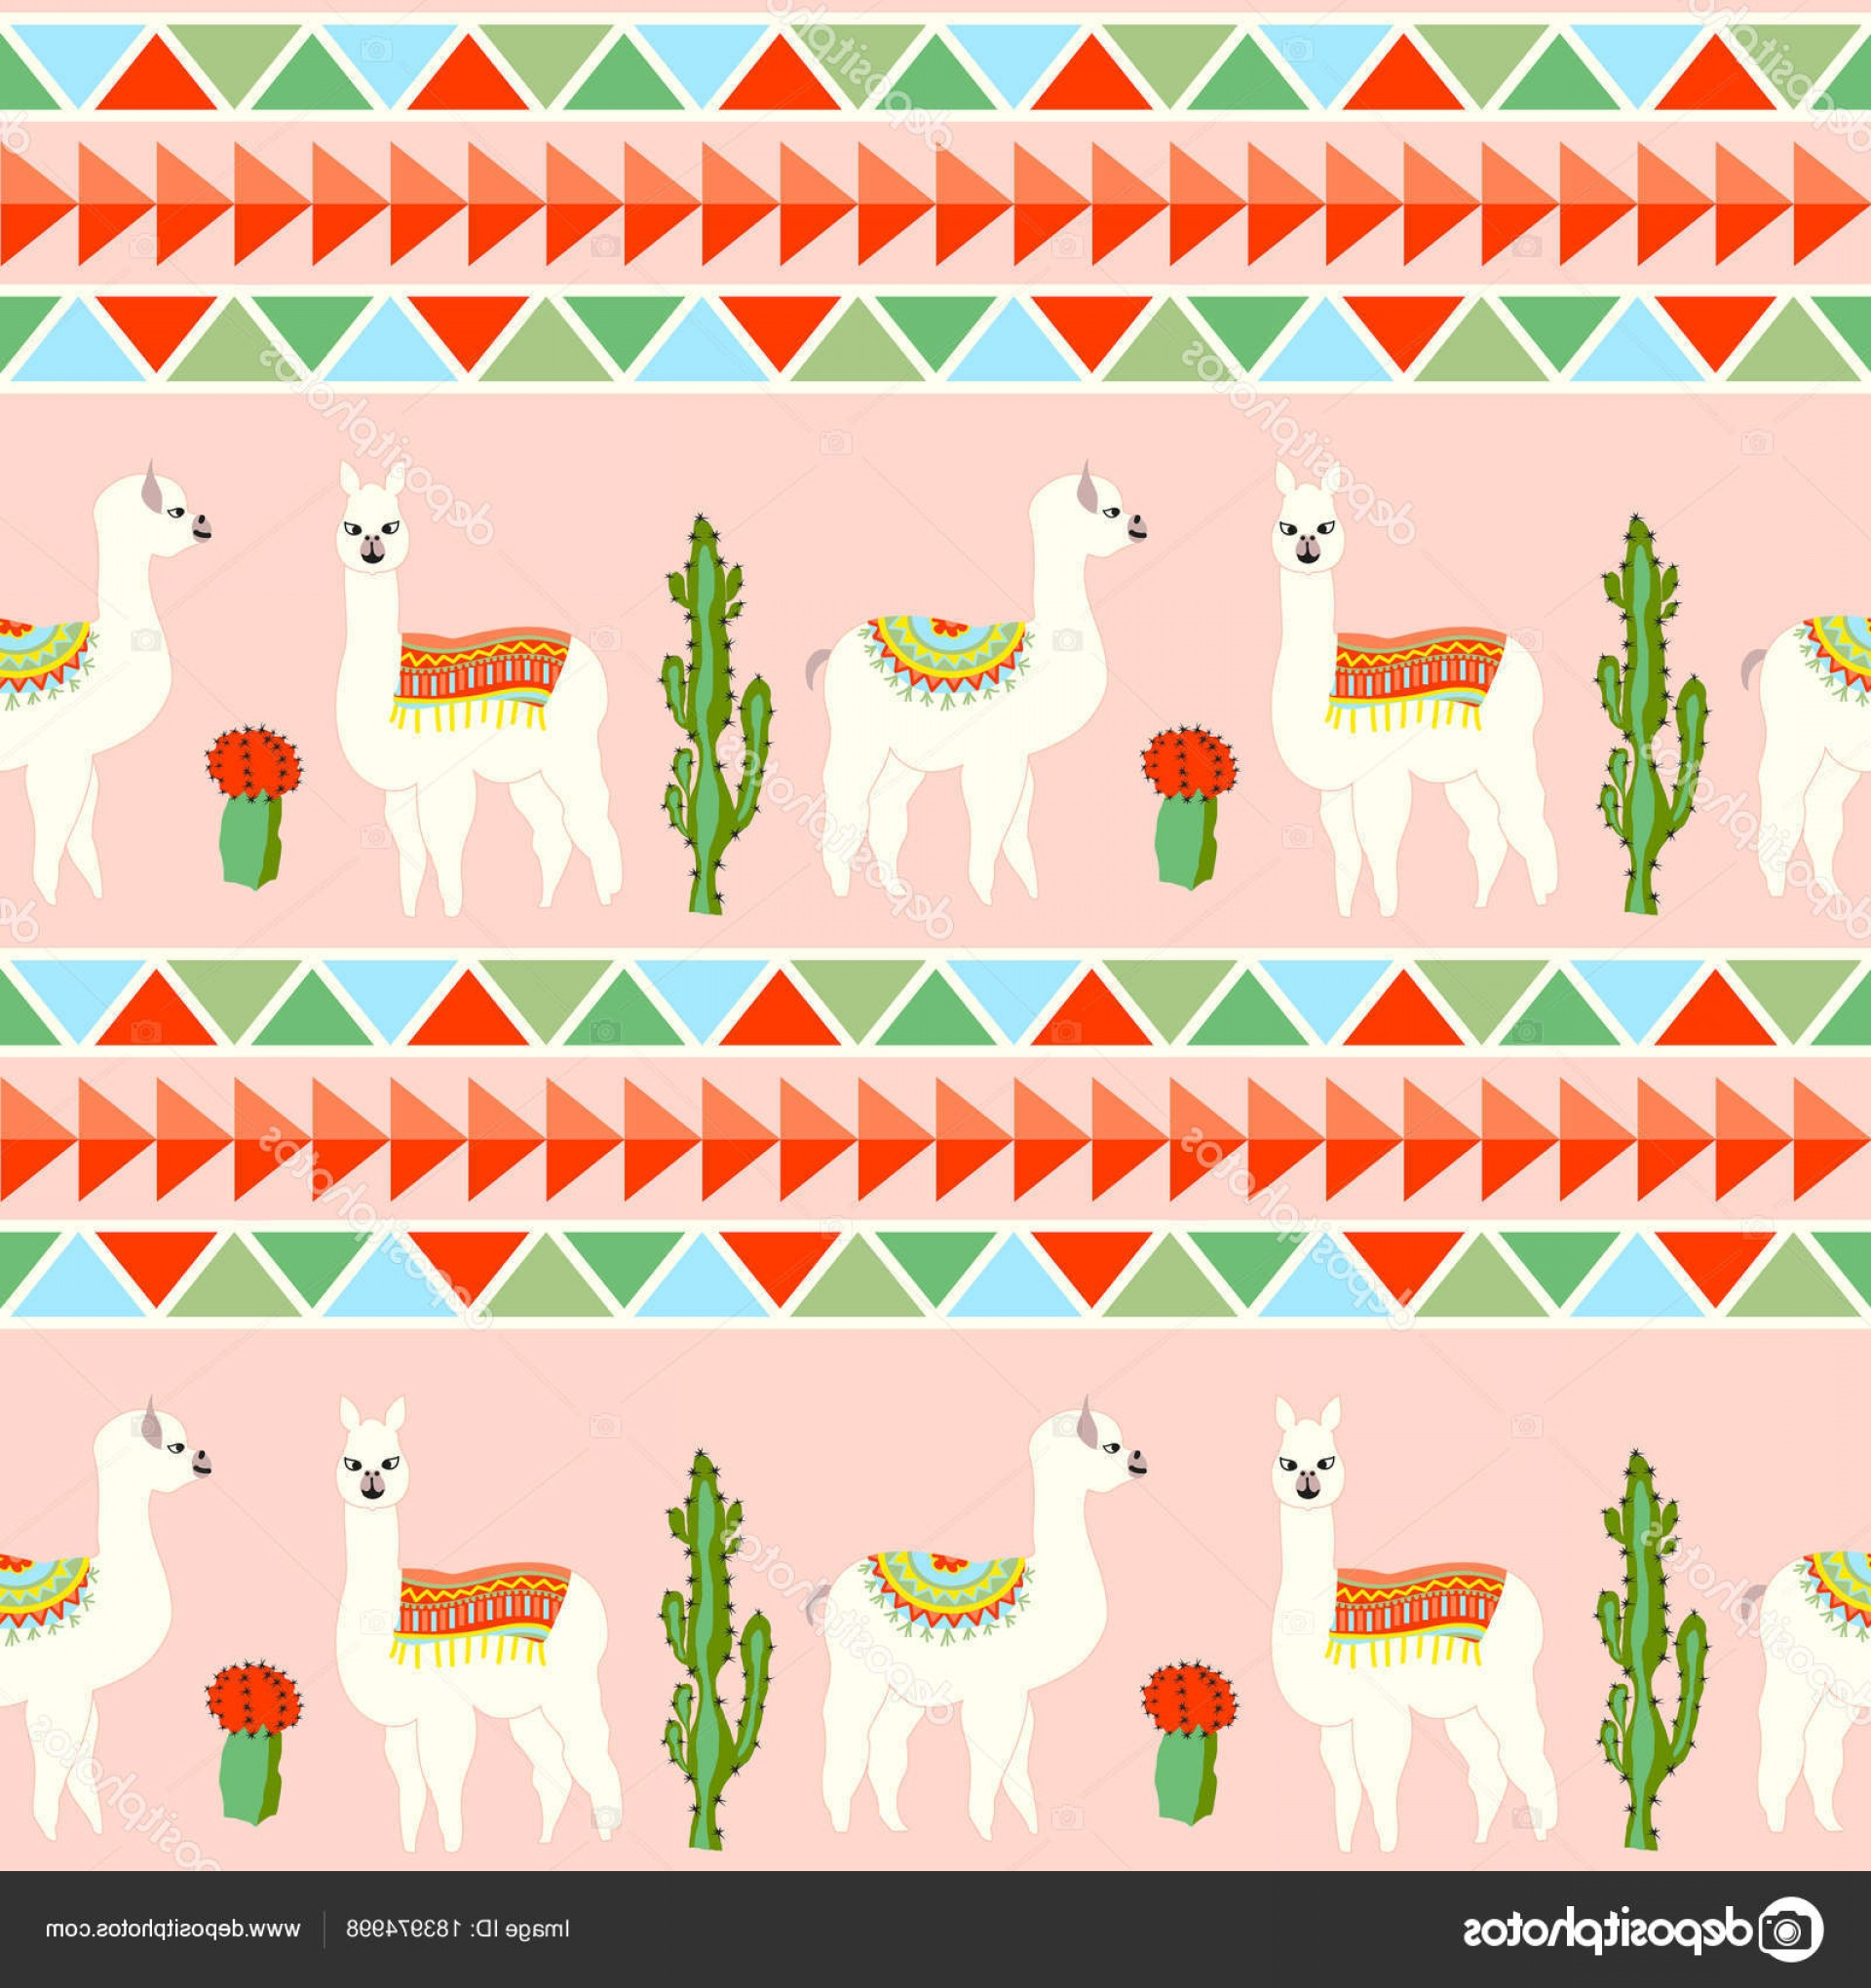 Aztec Cactus Vector: Stock Illustration Seamless Pattern Cute Llama Castus